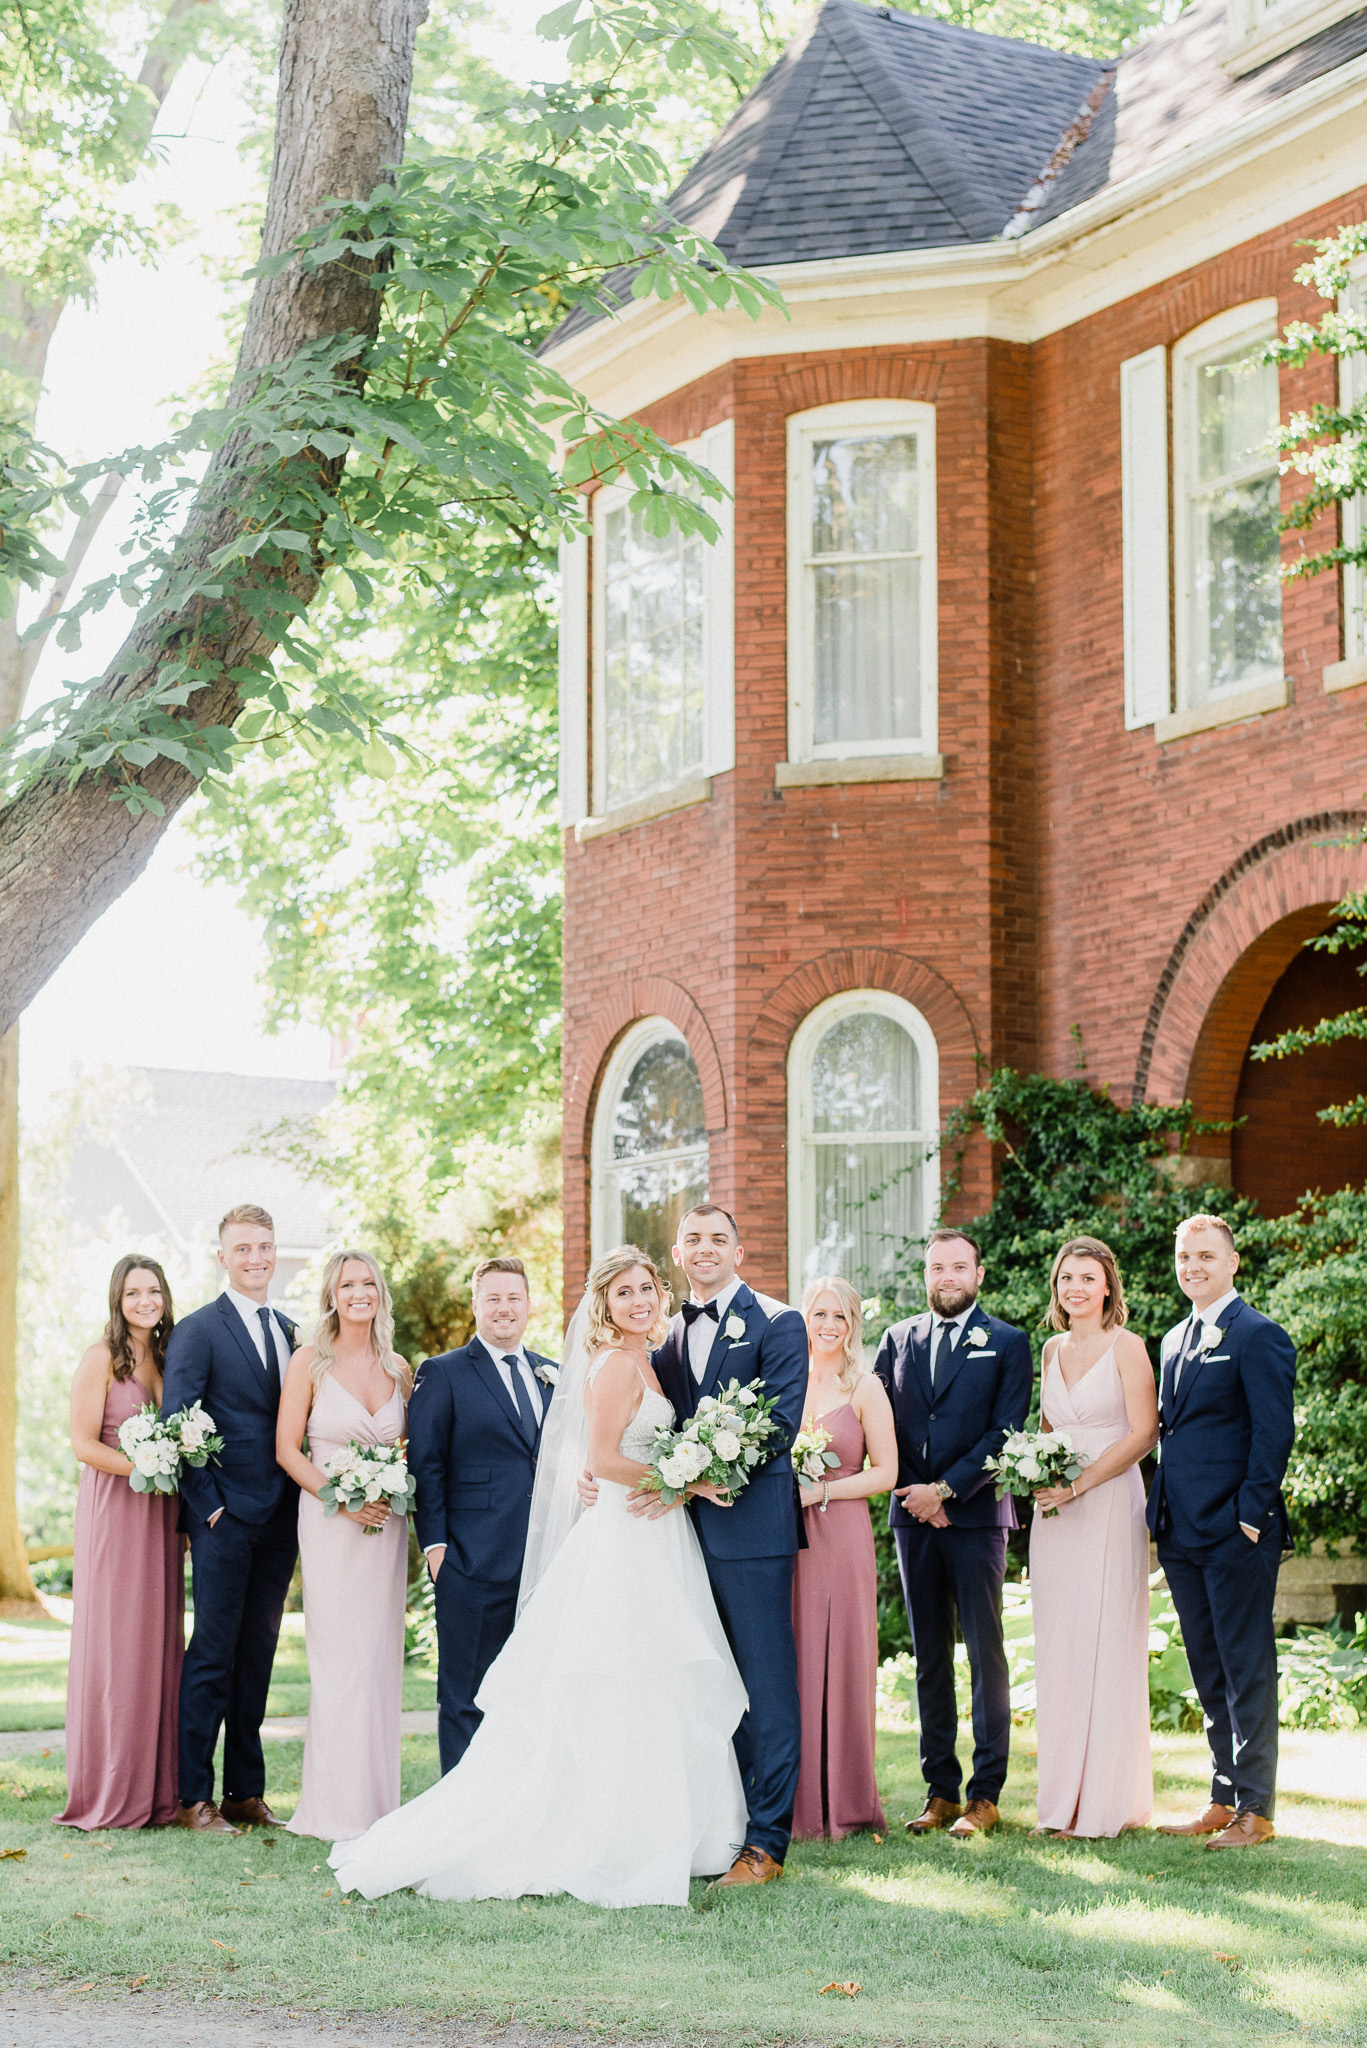 Mismatched blush and mauve dresses by Jenn Kavanagh Photography